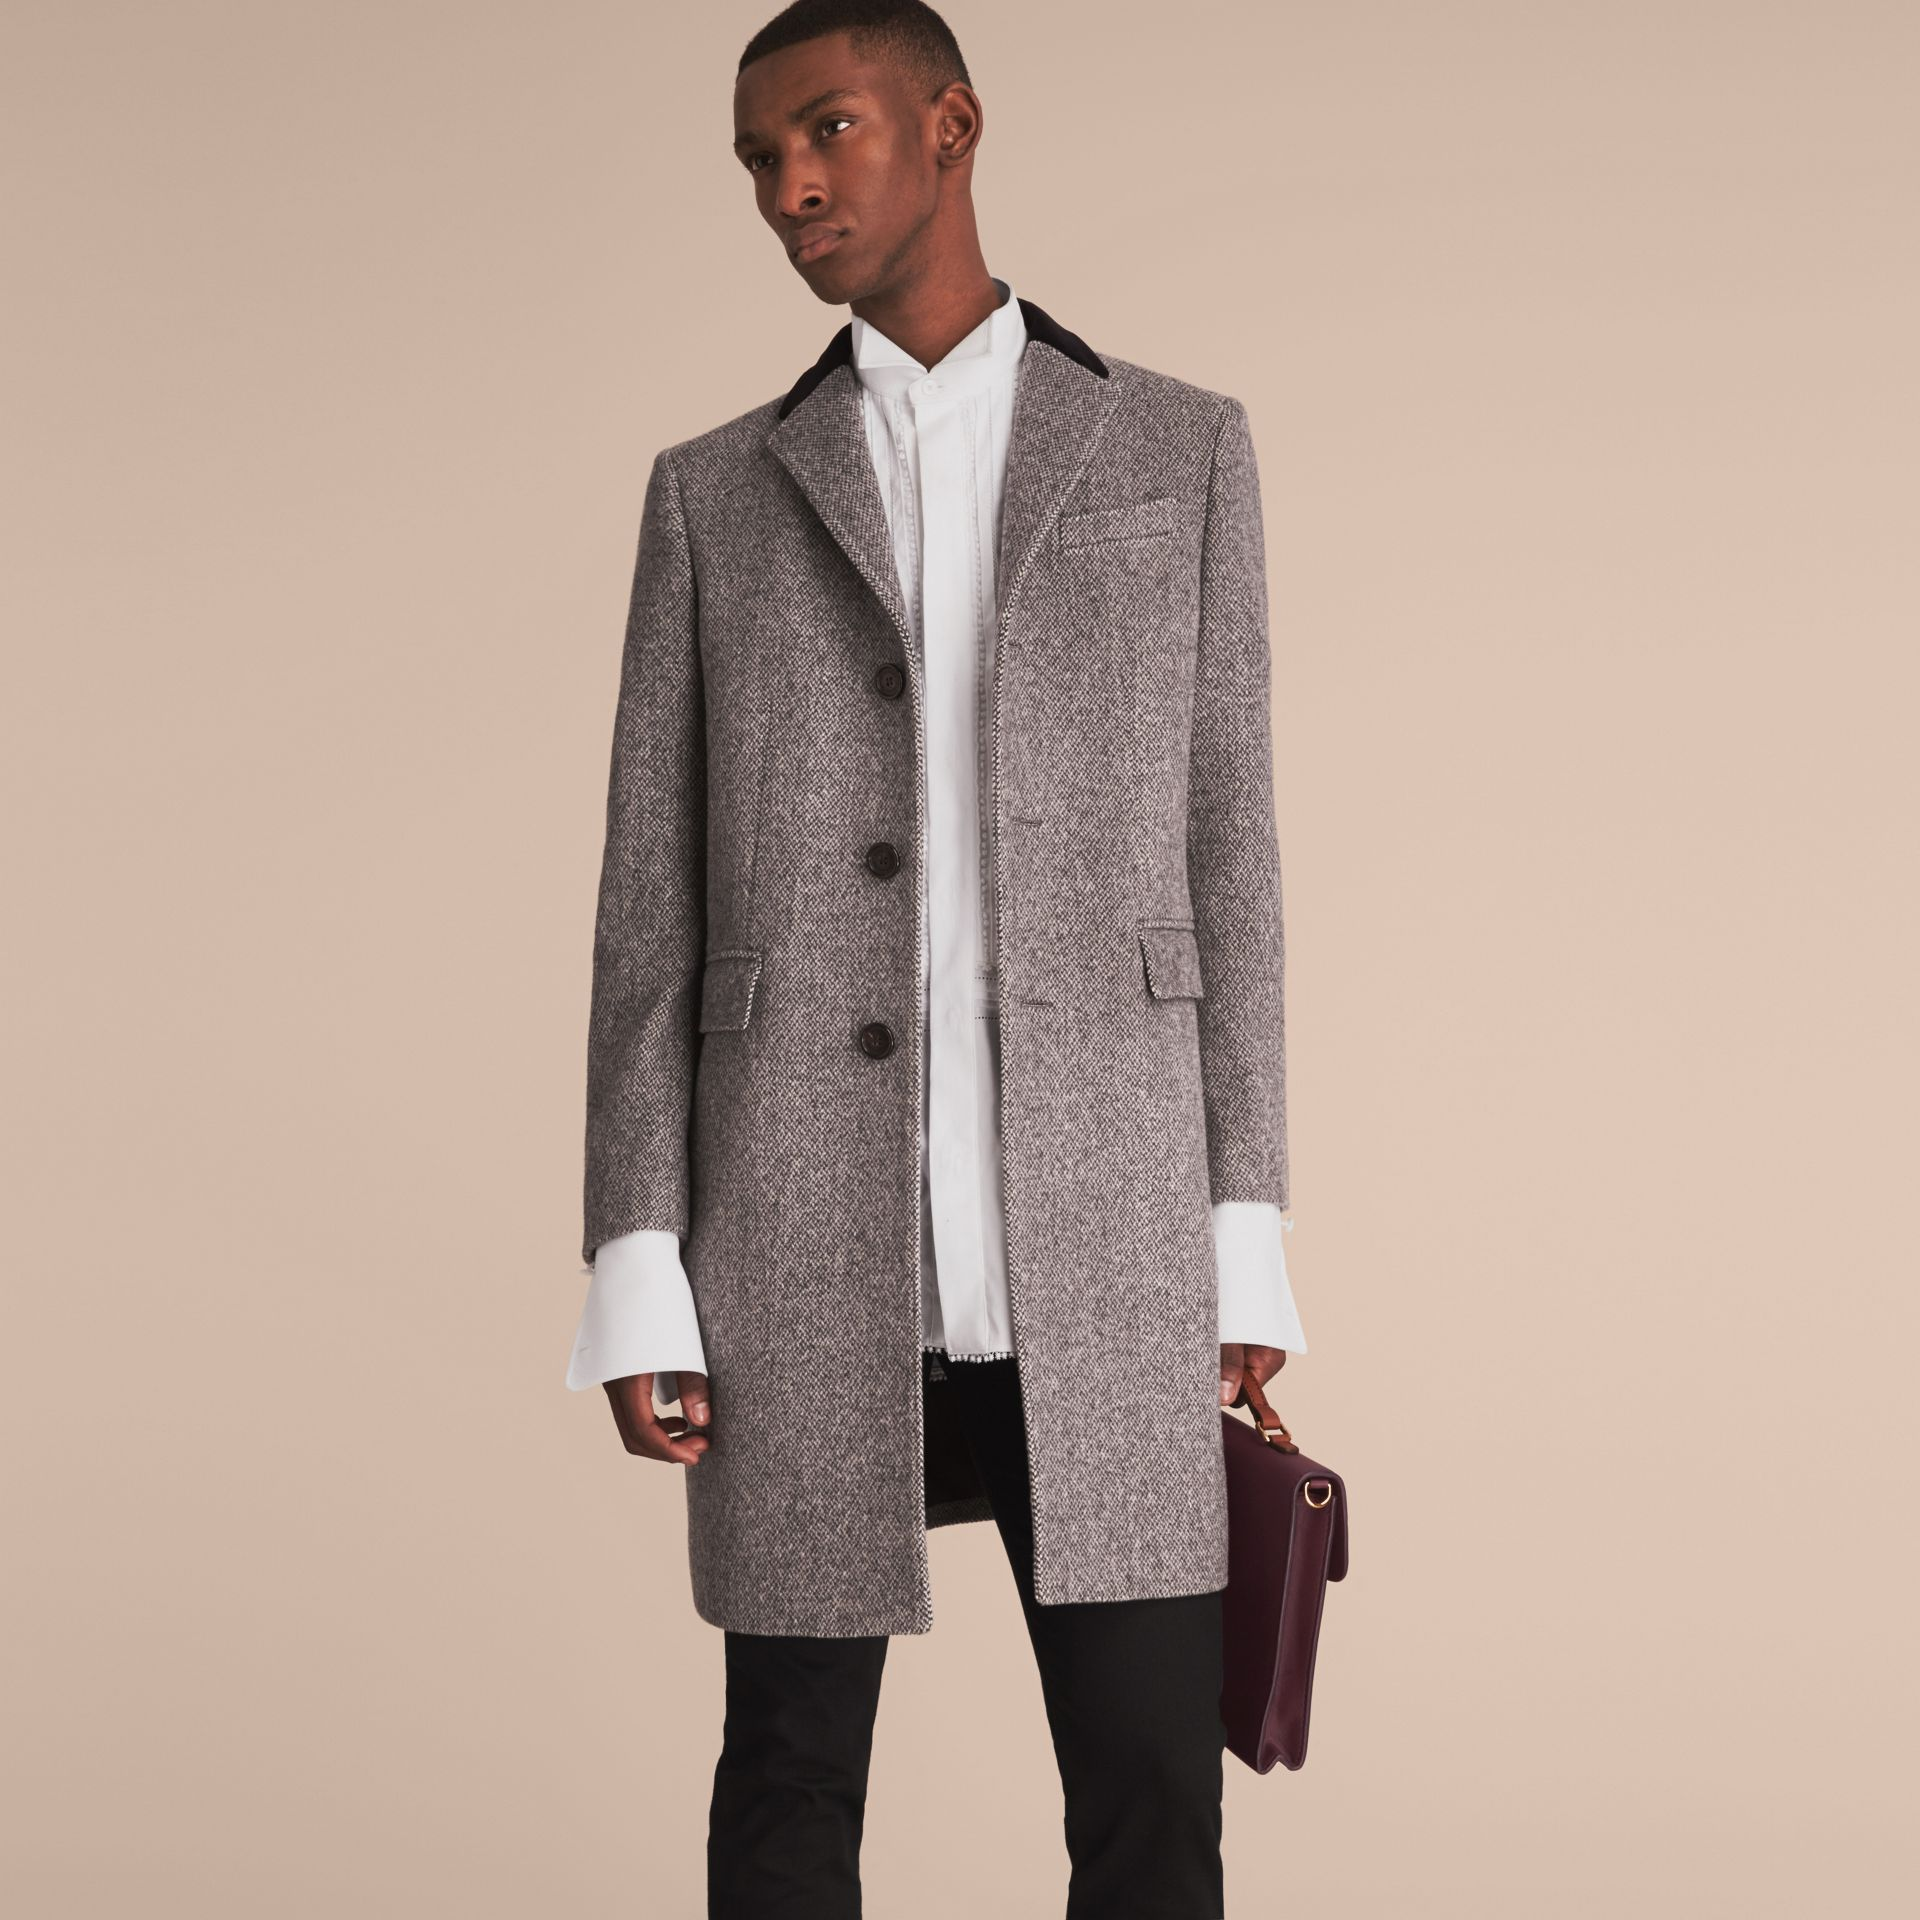 Velvet Collar Wool Tweed Topcoat in Black - Men | Burberry - gallery image 8